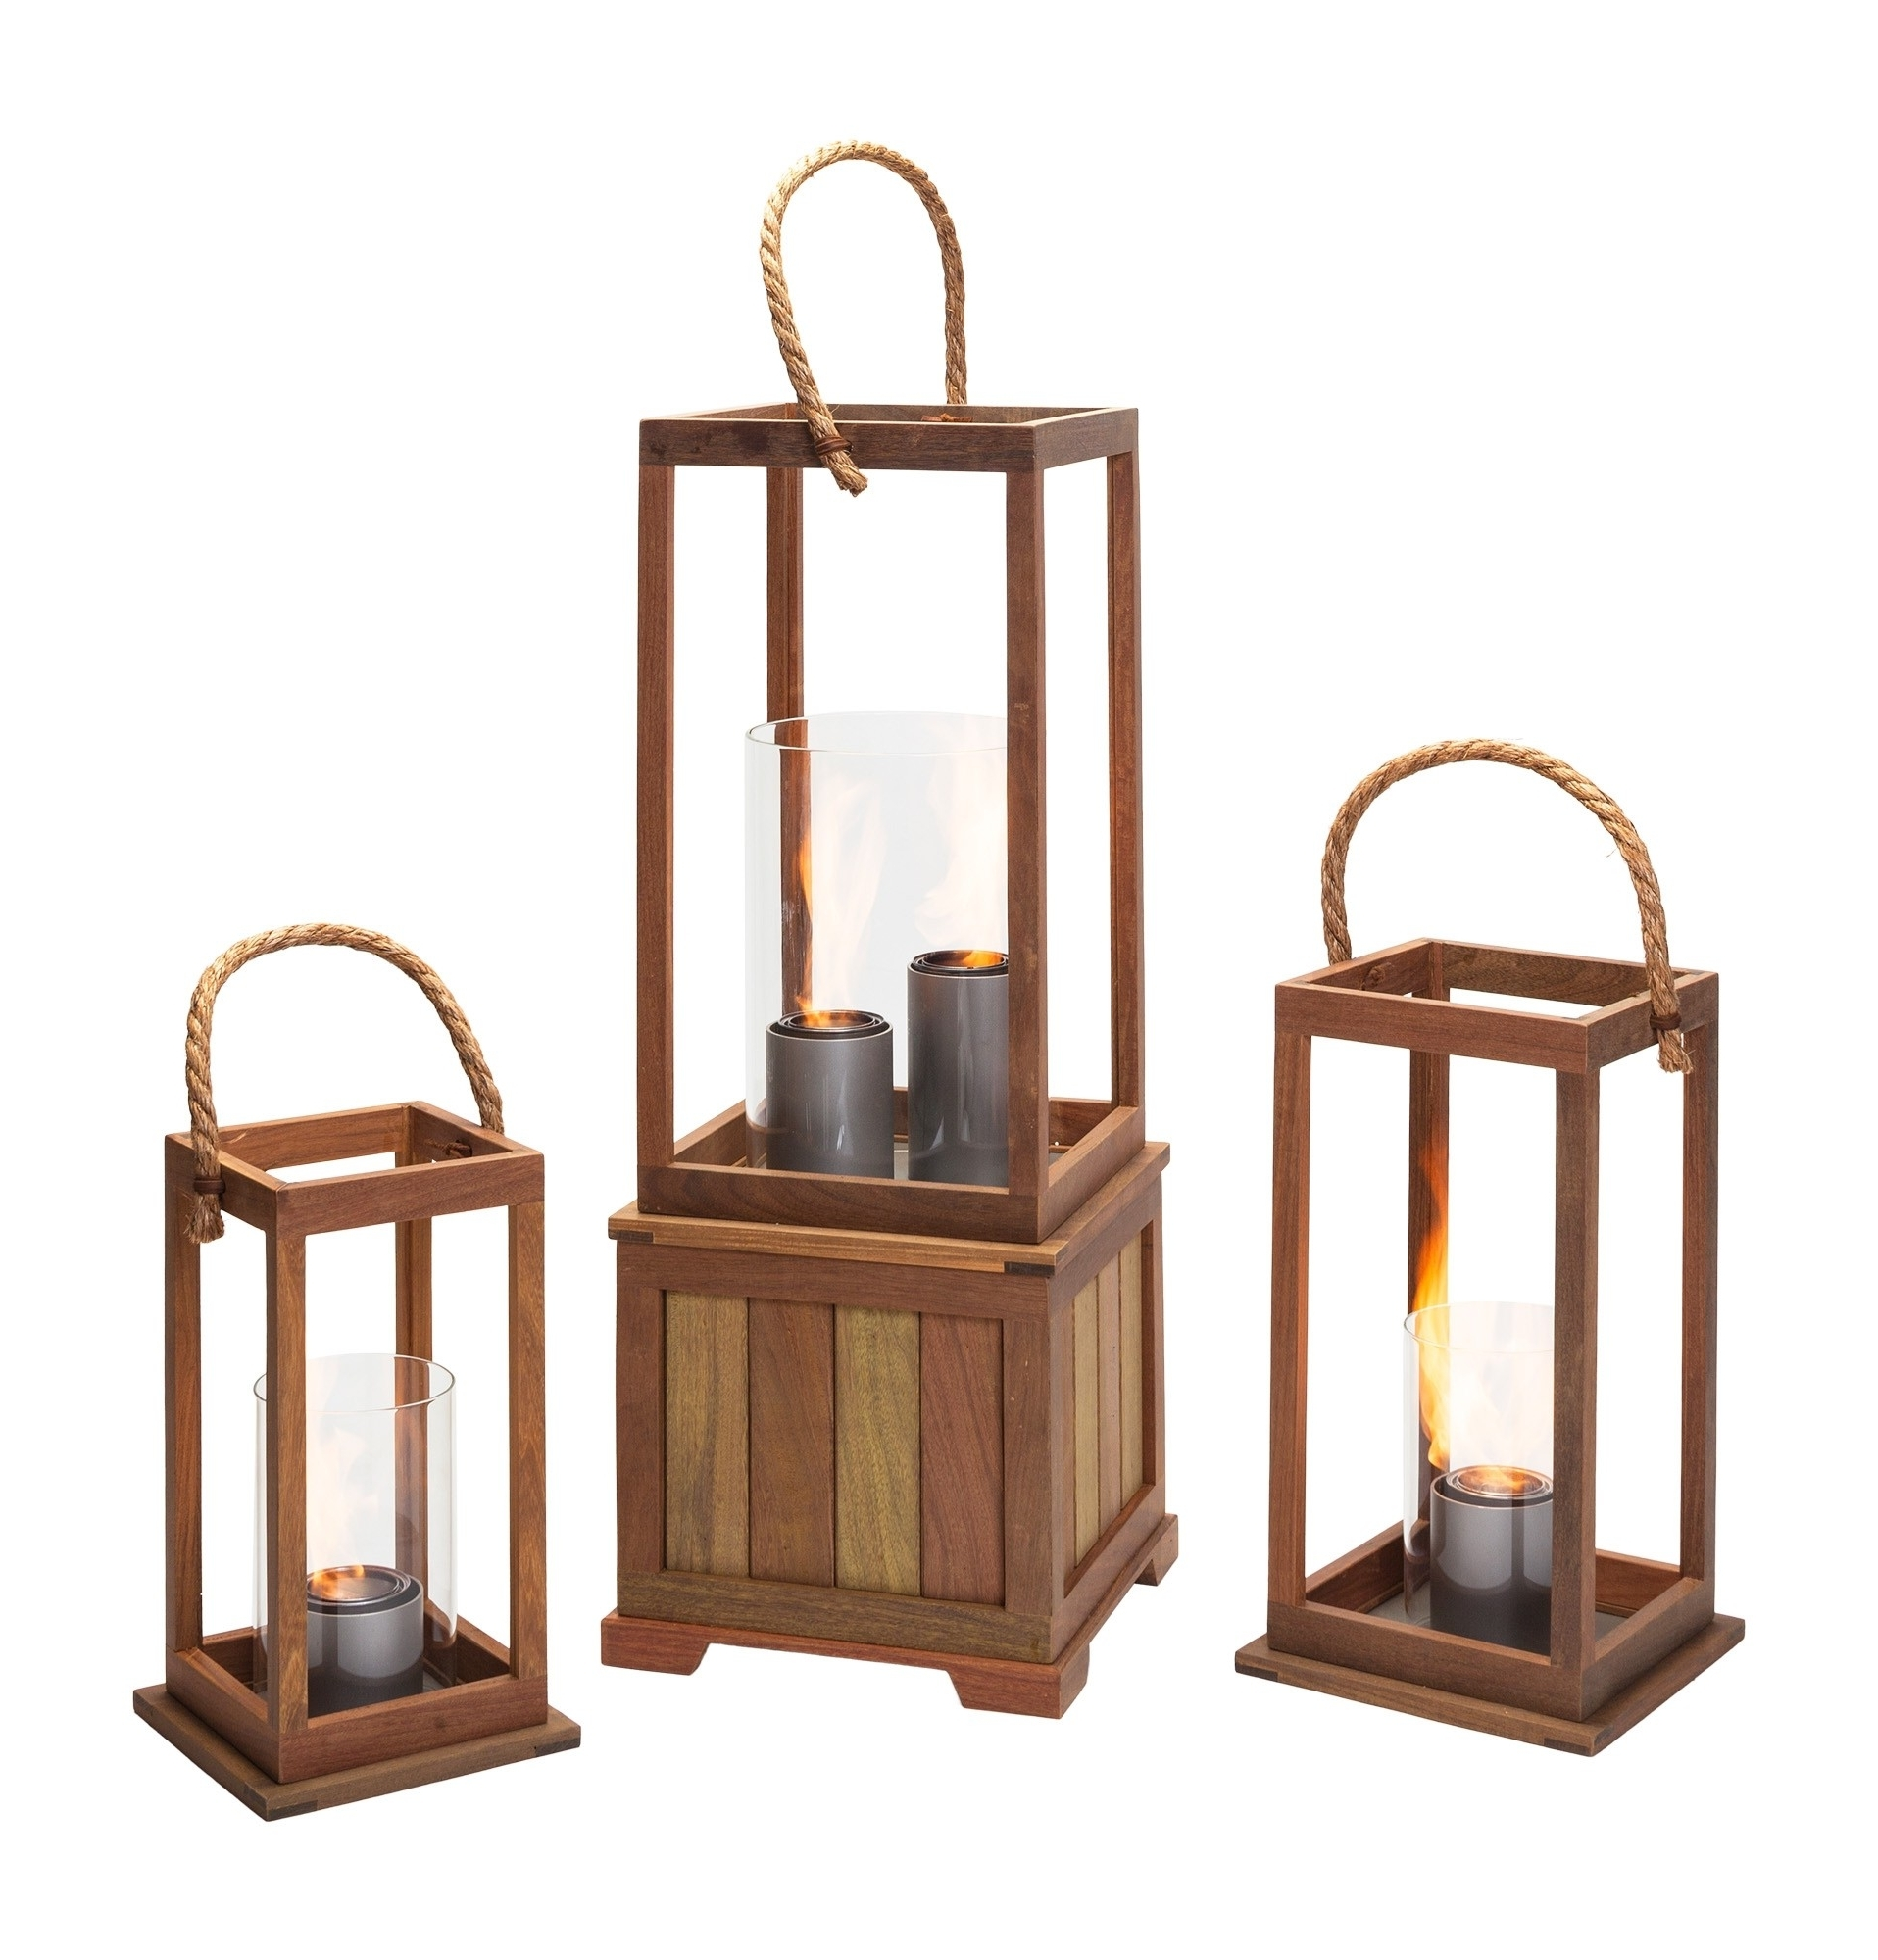 Xl Outdoor Lanterns For Recent Sonoma 17 Inch Outdoor Lantern In Ipe Woodnorthcape Fire (View 17 of 20)